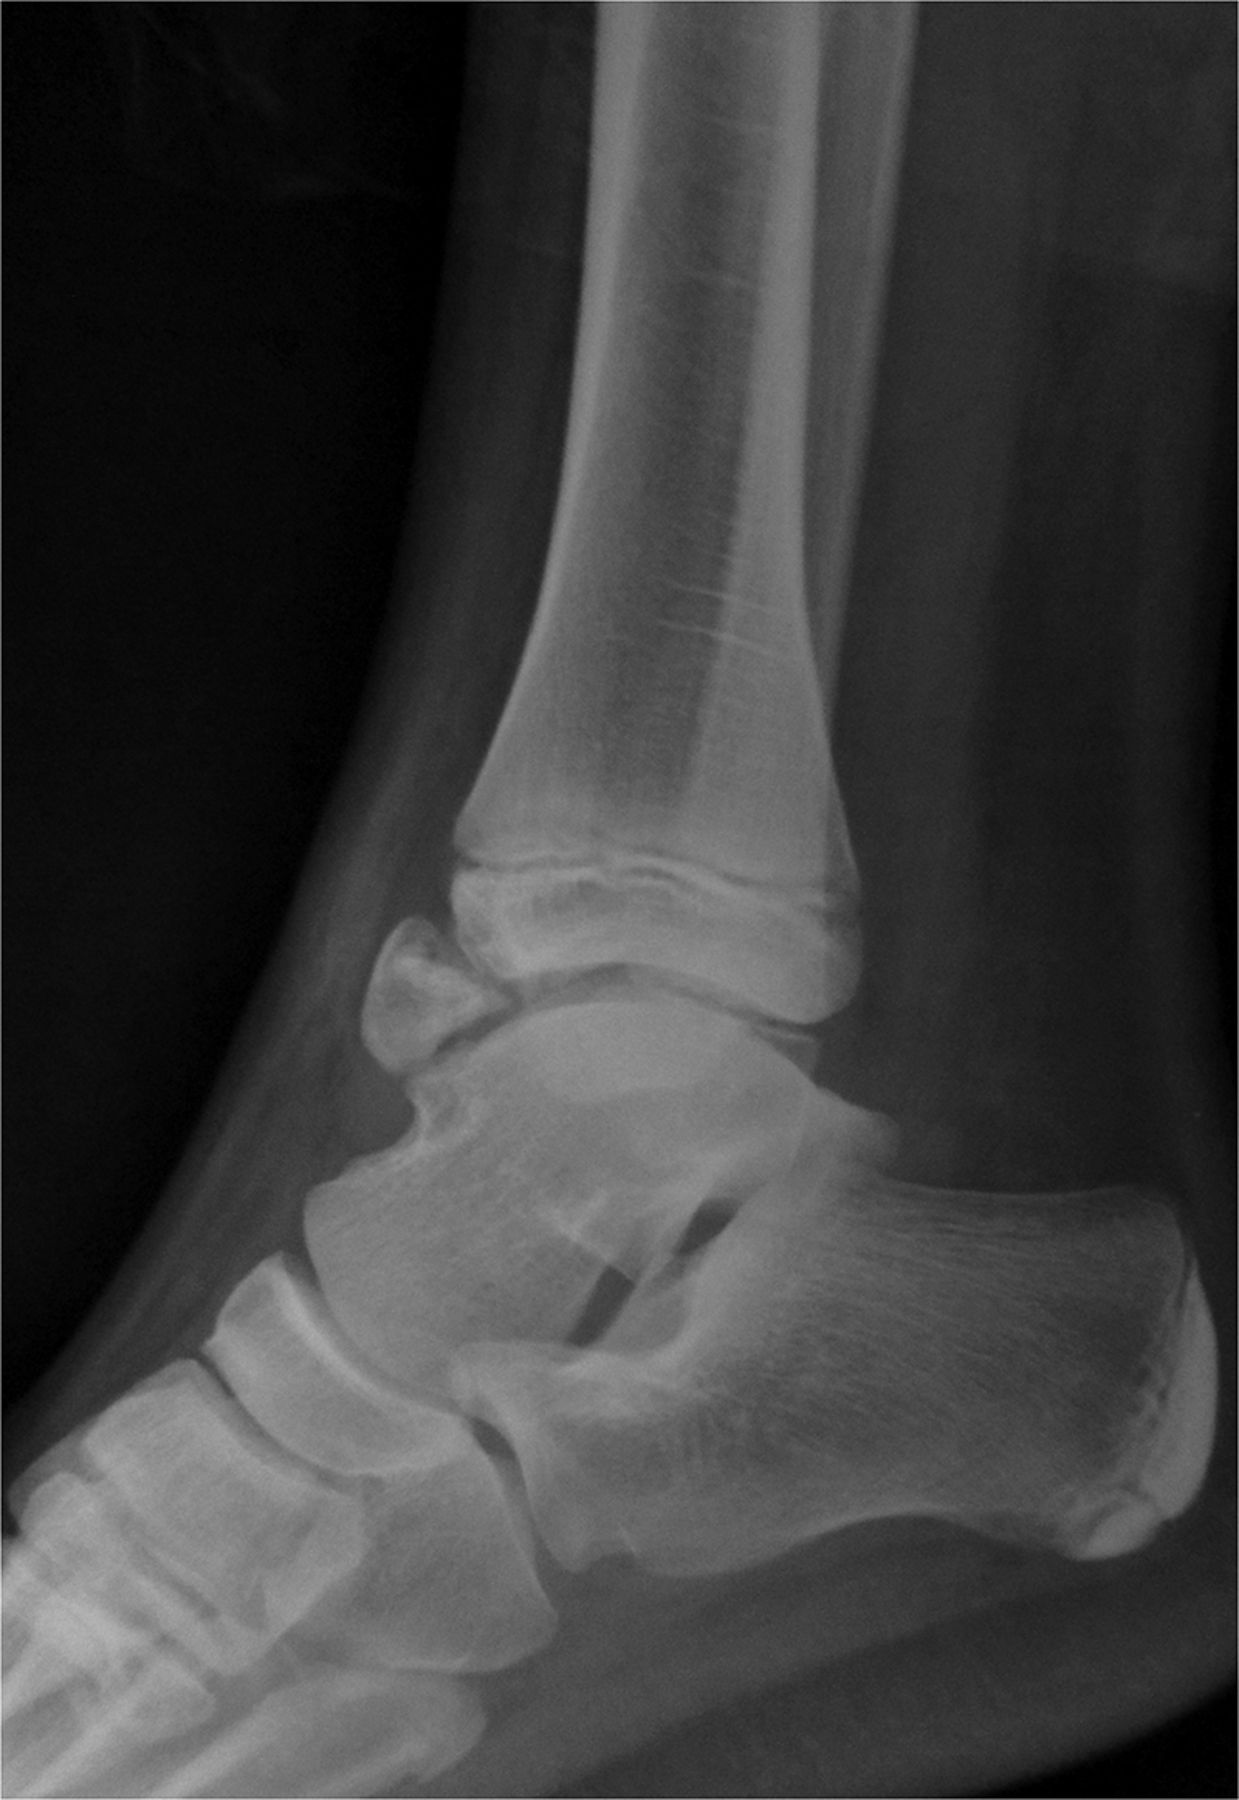 Dysplasia epiphysealis hemimelica of the ankle: a fracture-like rare